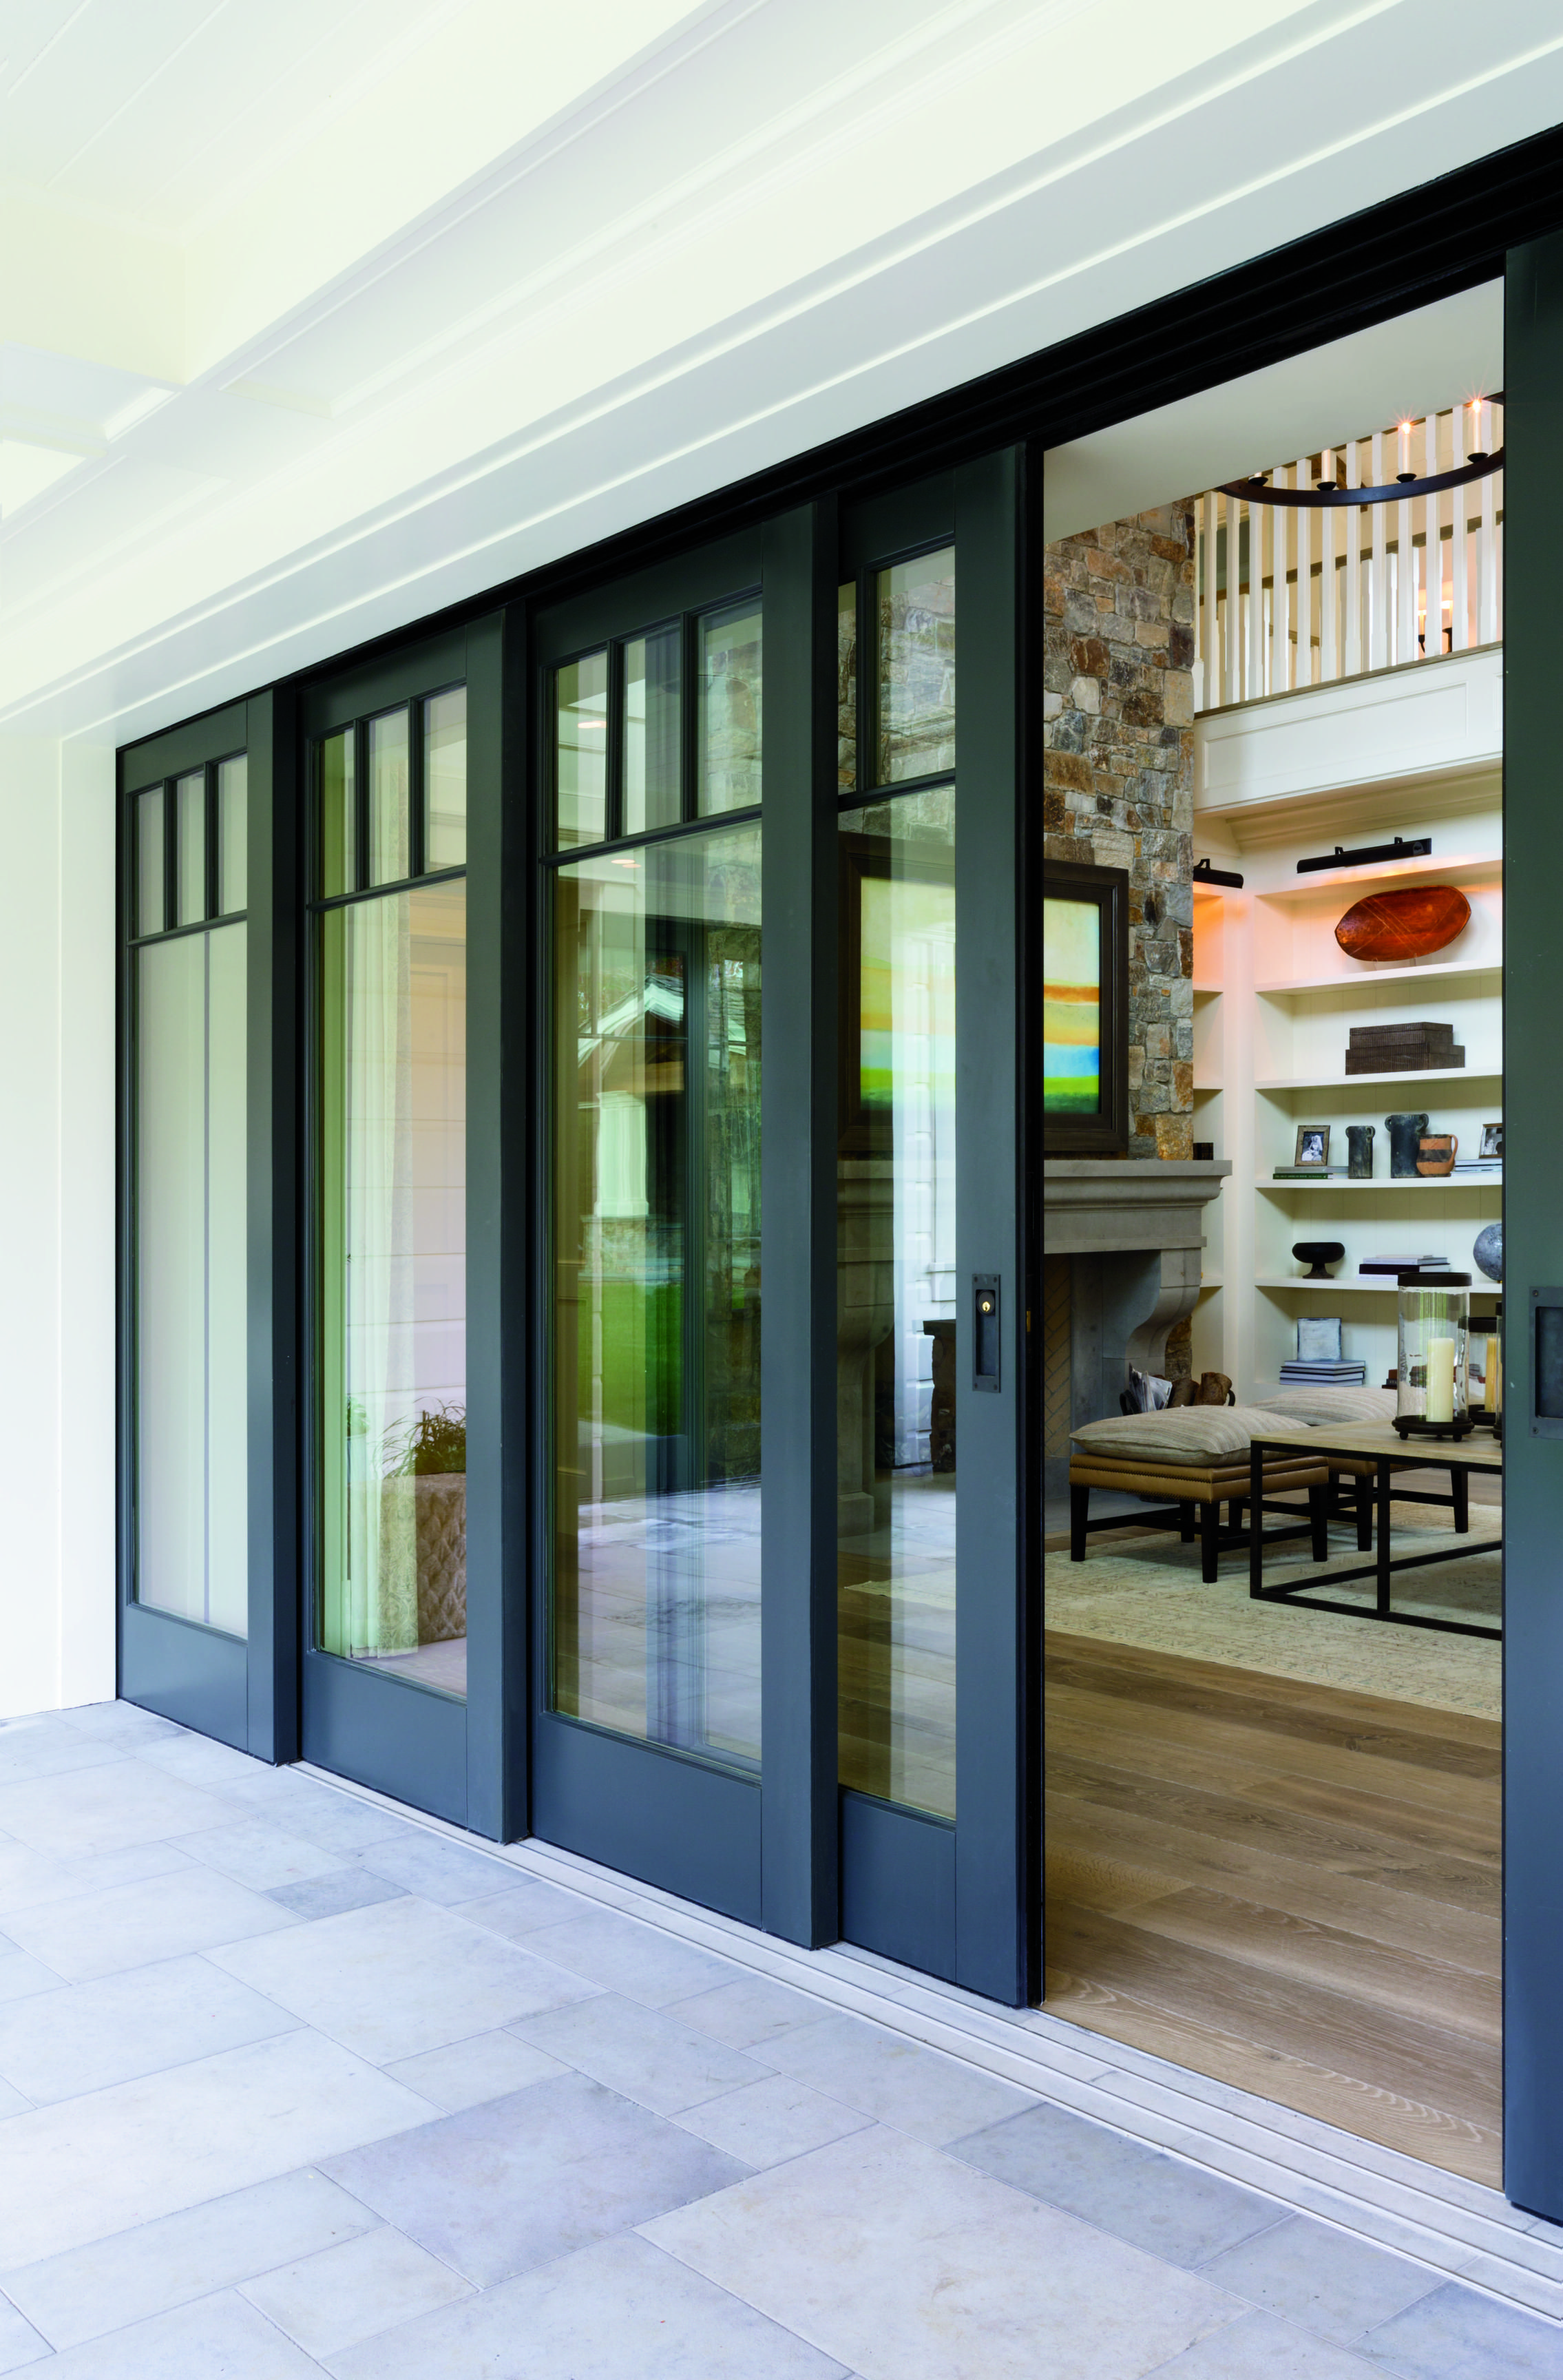 Best 21+ Interior Sliding Doors Ideas | House planning ...